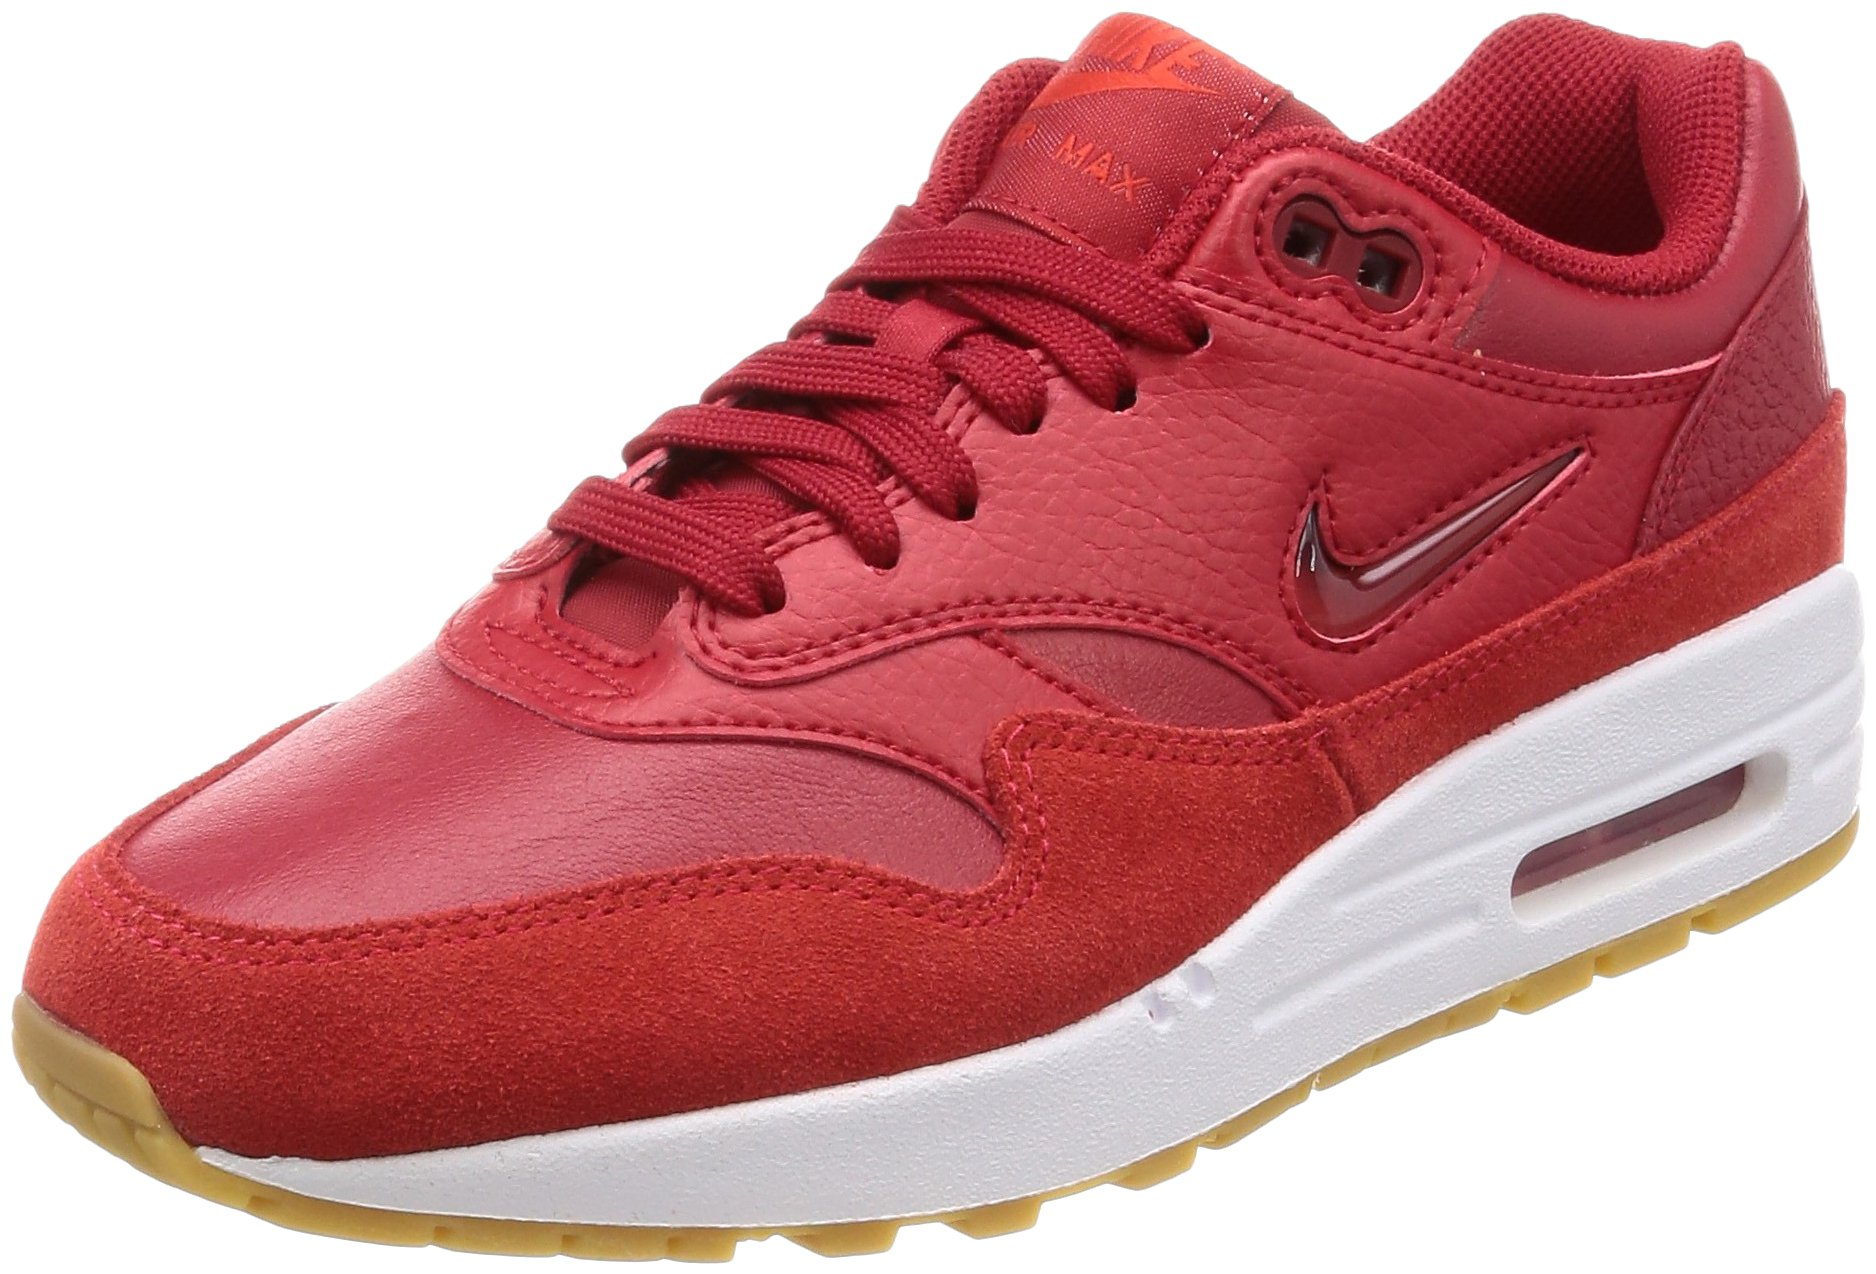 Nike Women's Air Max 1 Premium SC Gym Red AA0512 602 (Size: 6.5)